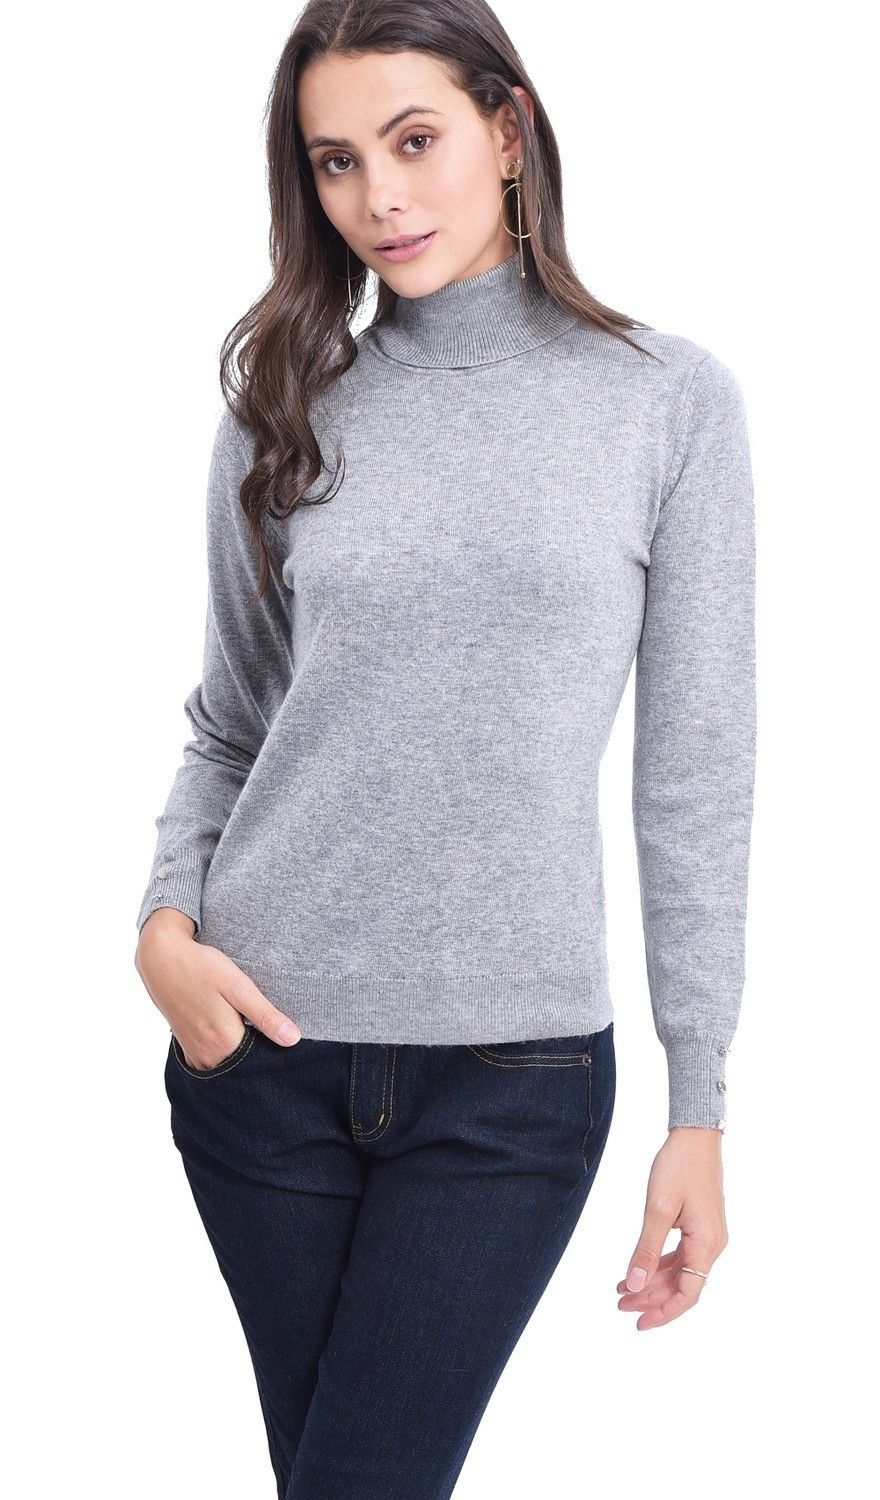 C&JO Turtleneck Sweater with Buttoned Sleeves in Light Grey